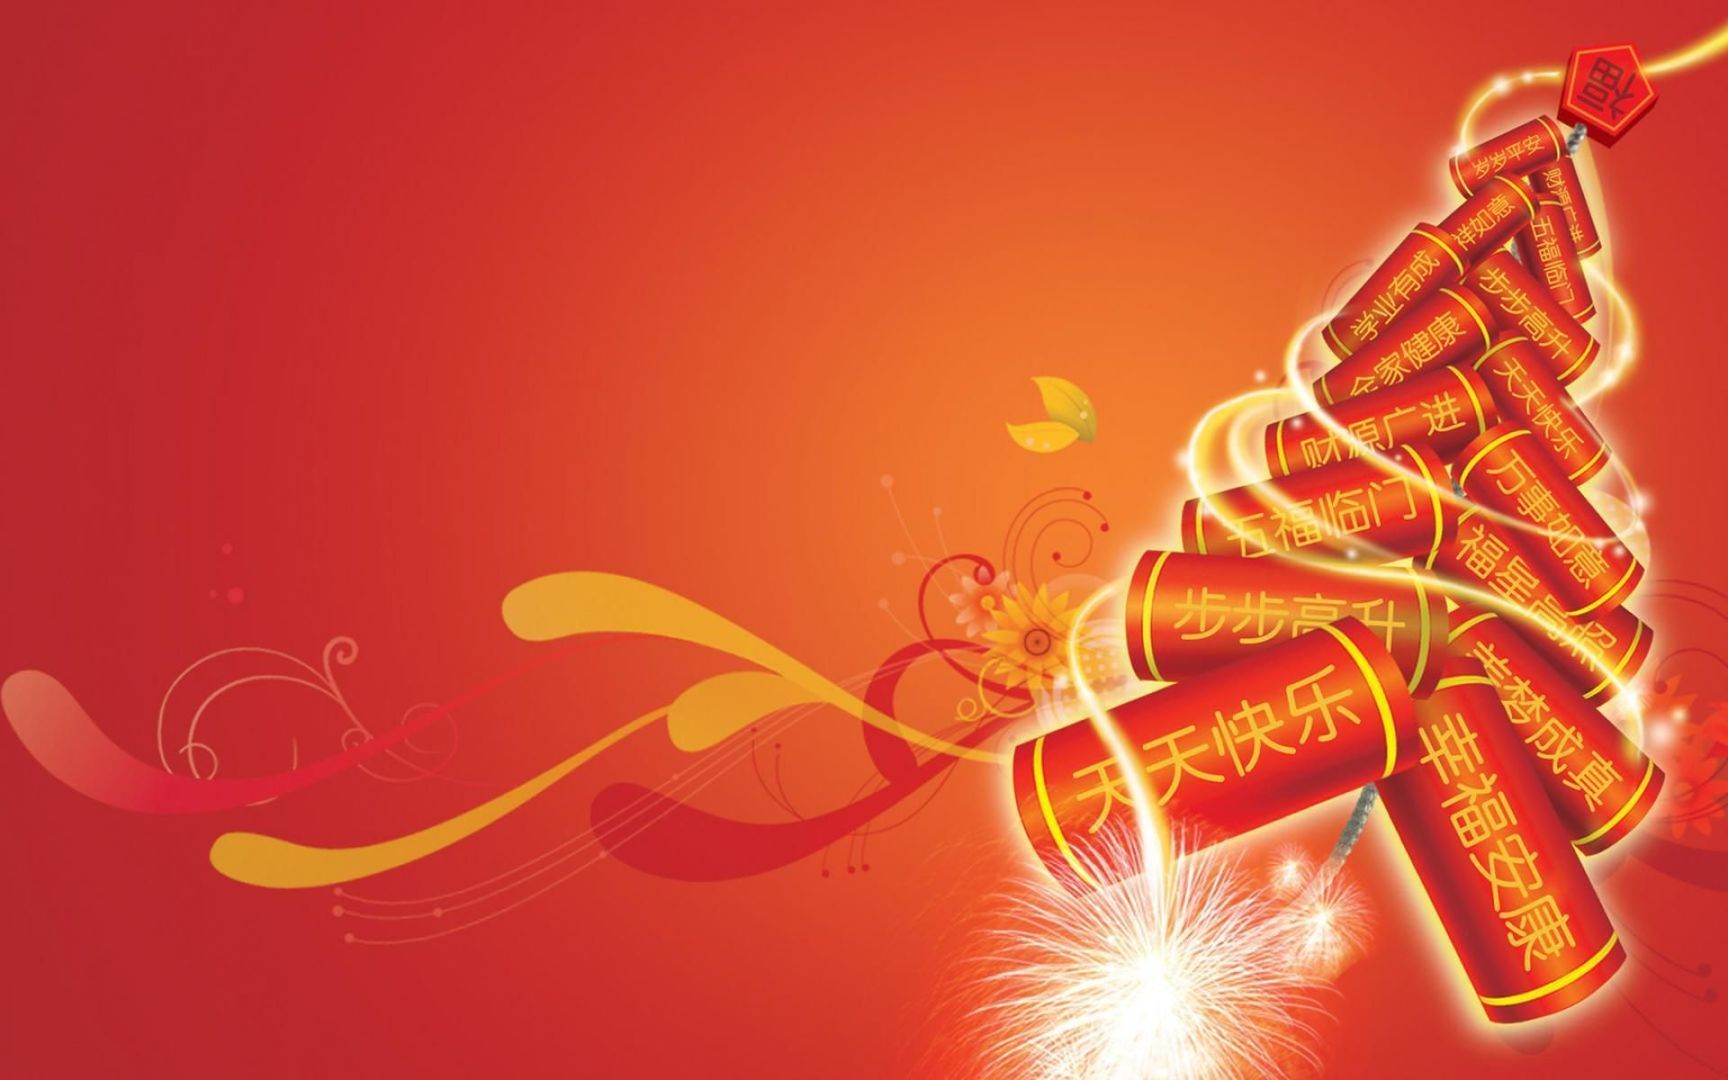 Chinese new year 2014 wallpaper hd wallpaper wallpapers chinese new year 2014 wallpaper hd wallpaper voltagebd Gallery